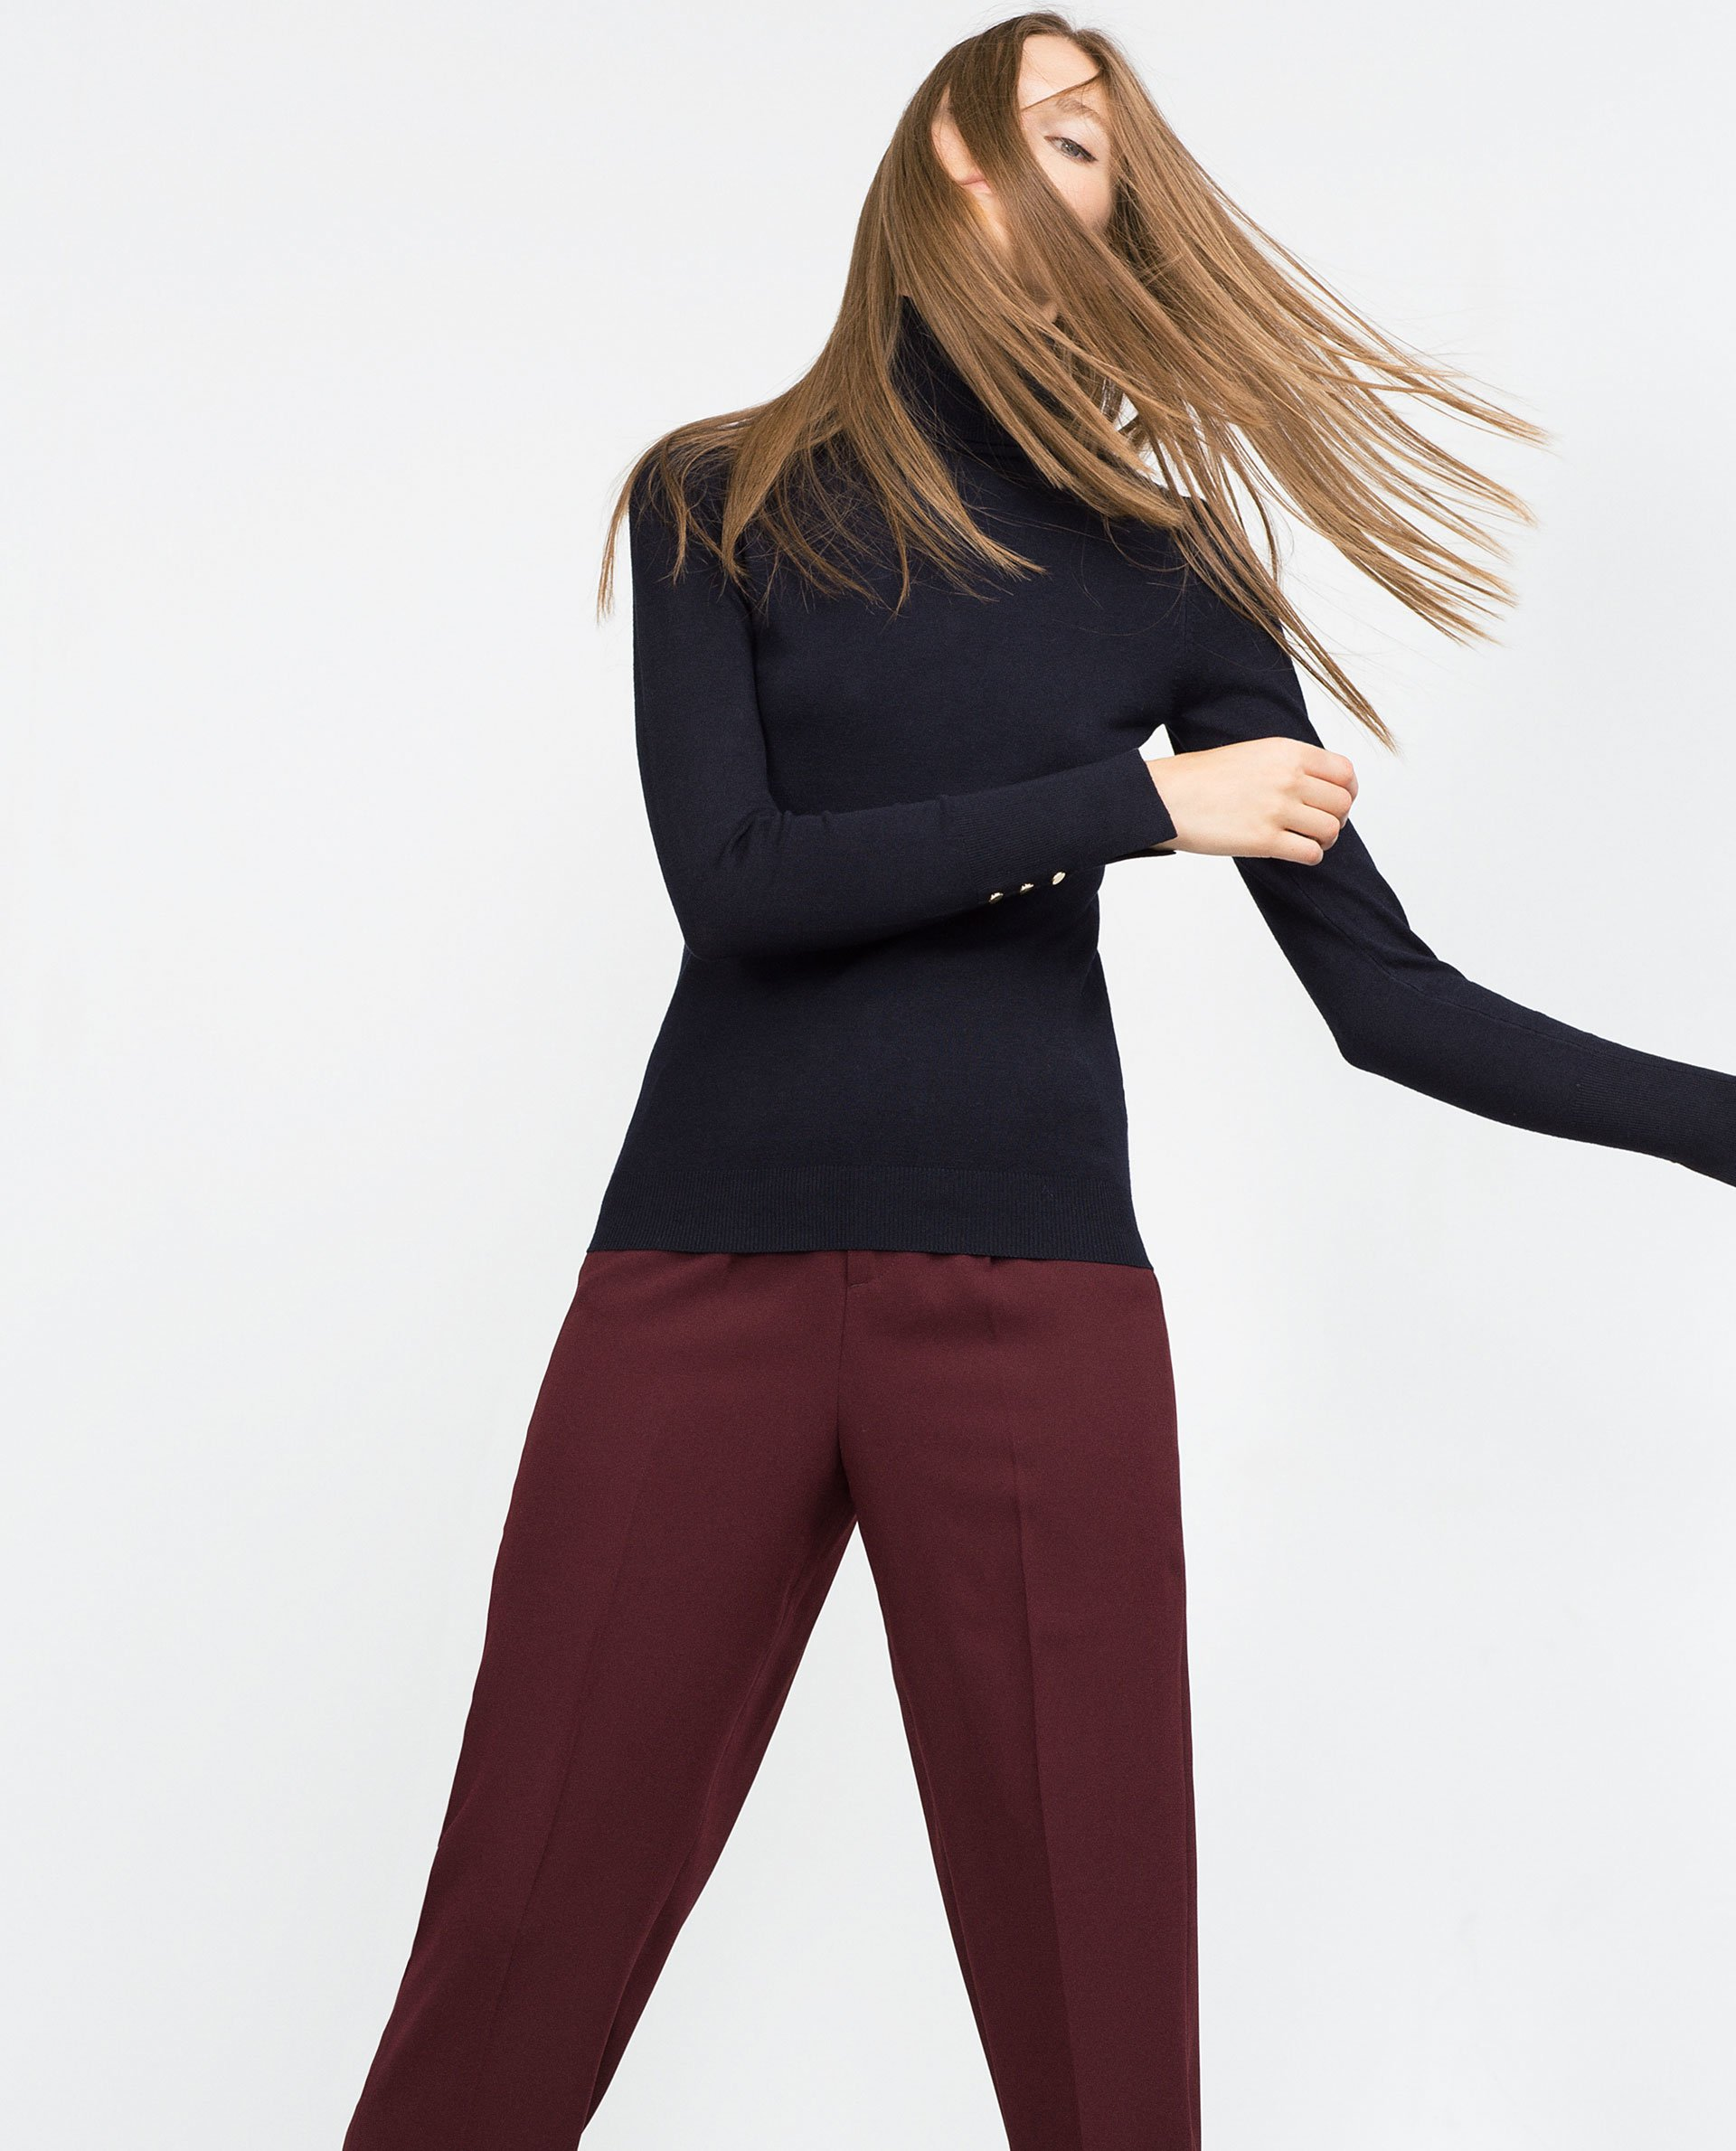 Banana Republic Women's Navy Blue cashmere polo neck jumper, size medium. This is a very soft jumper. This is a shorter fitting jumper, with a larger ribbed hem.